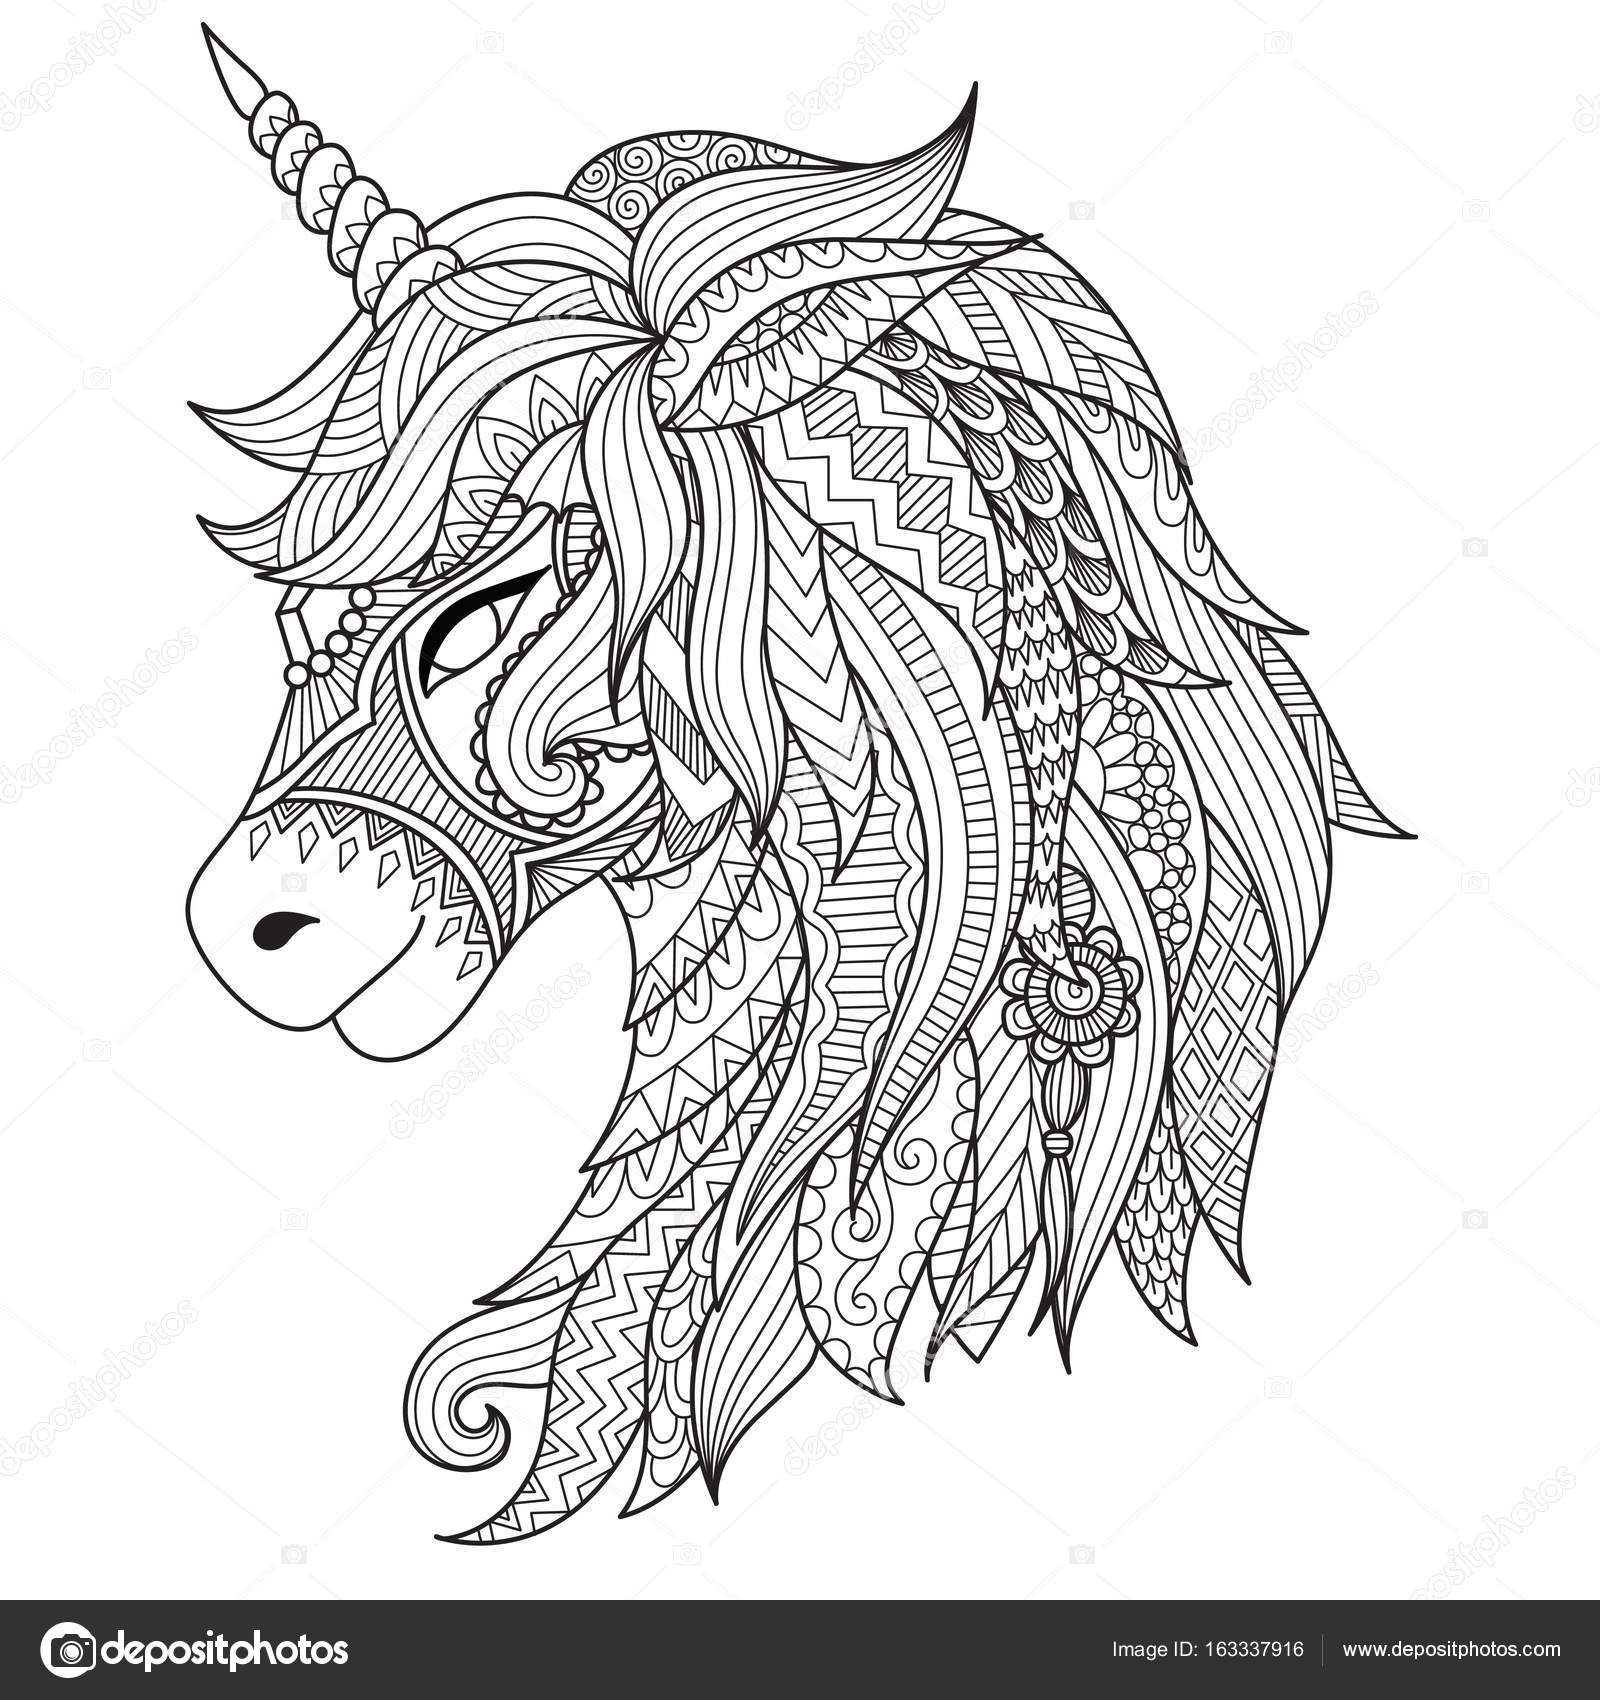 Drawing Unicorn Zentangle Style For Coloring Book Tattoo Shirt Design Logo Sign Stylized Vector Illustration Of Horse In Tangle Doodle